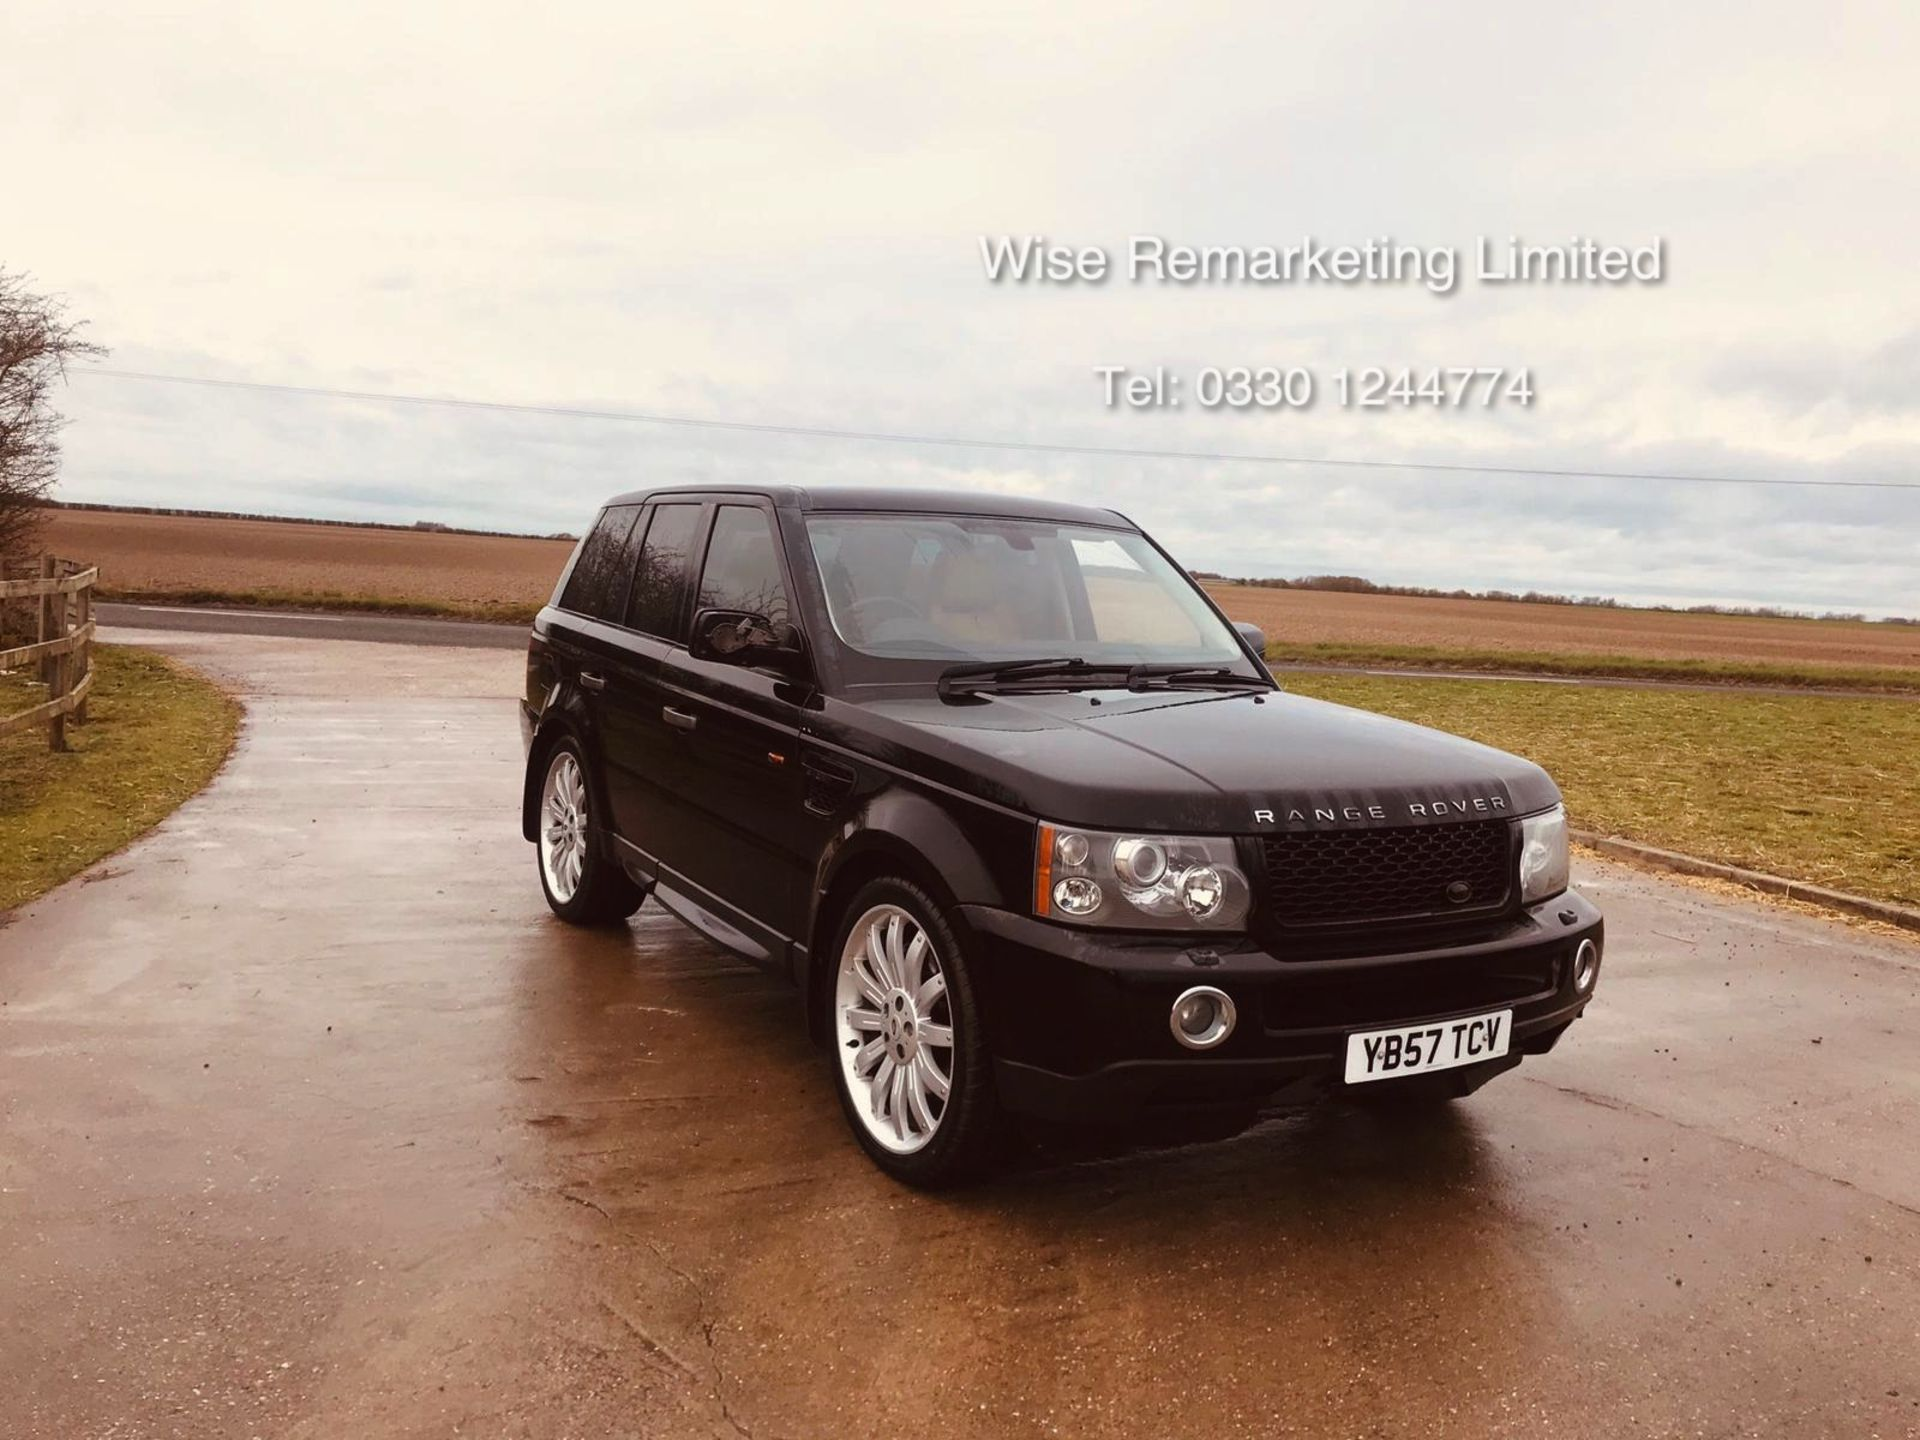 Lot 34 - Range Rover Sport 2.7 TDV6 HSE Auto - 2008 Model - Cream Leather - Sat Nav - Heated Seats